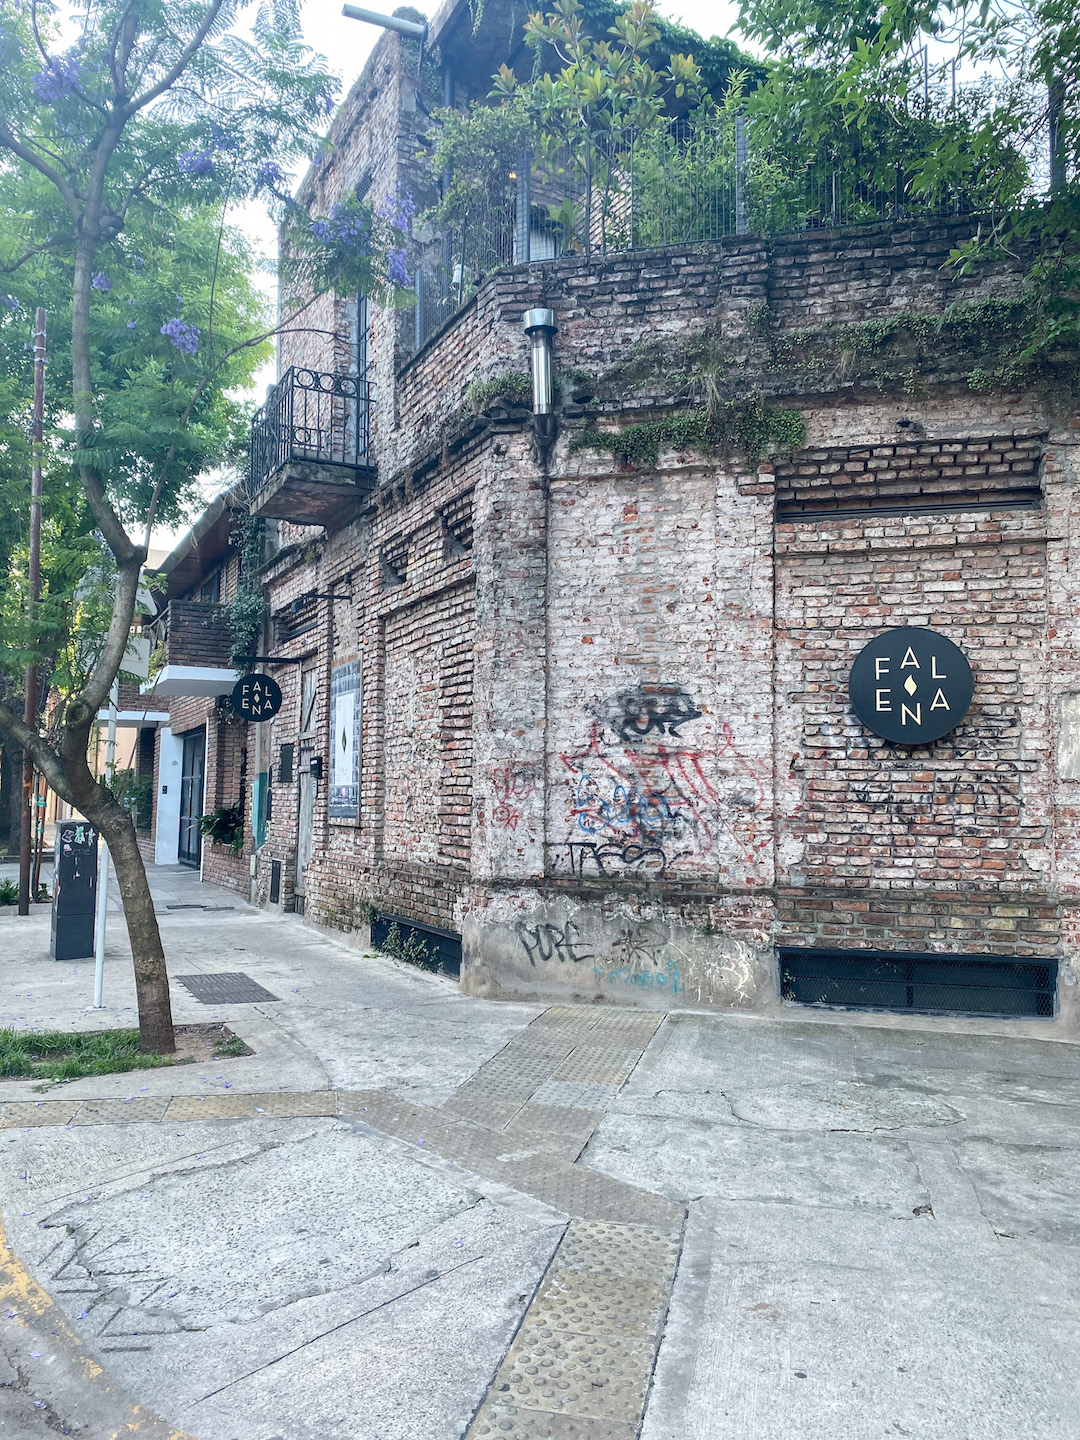 Falena Bookstore in Buenos Aires